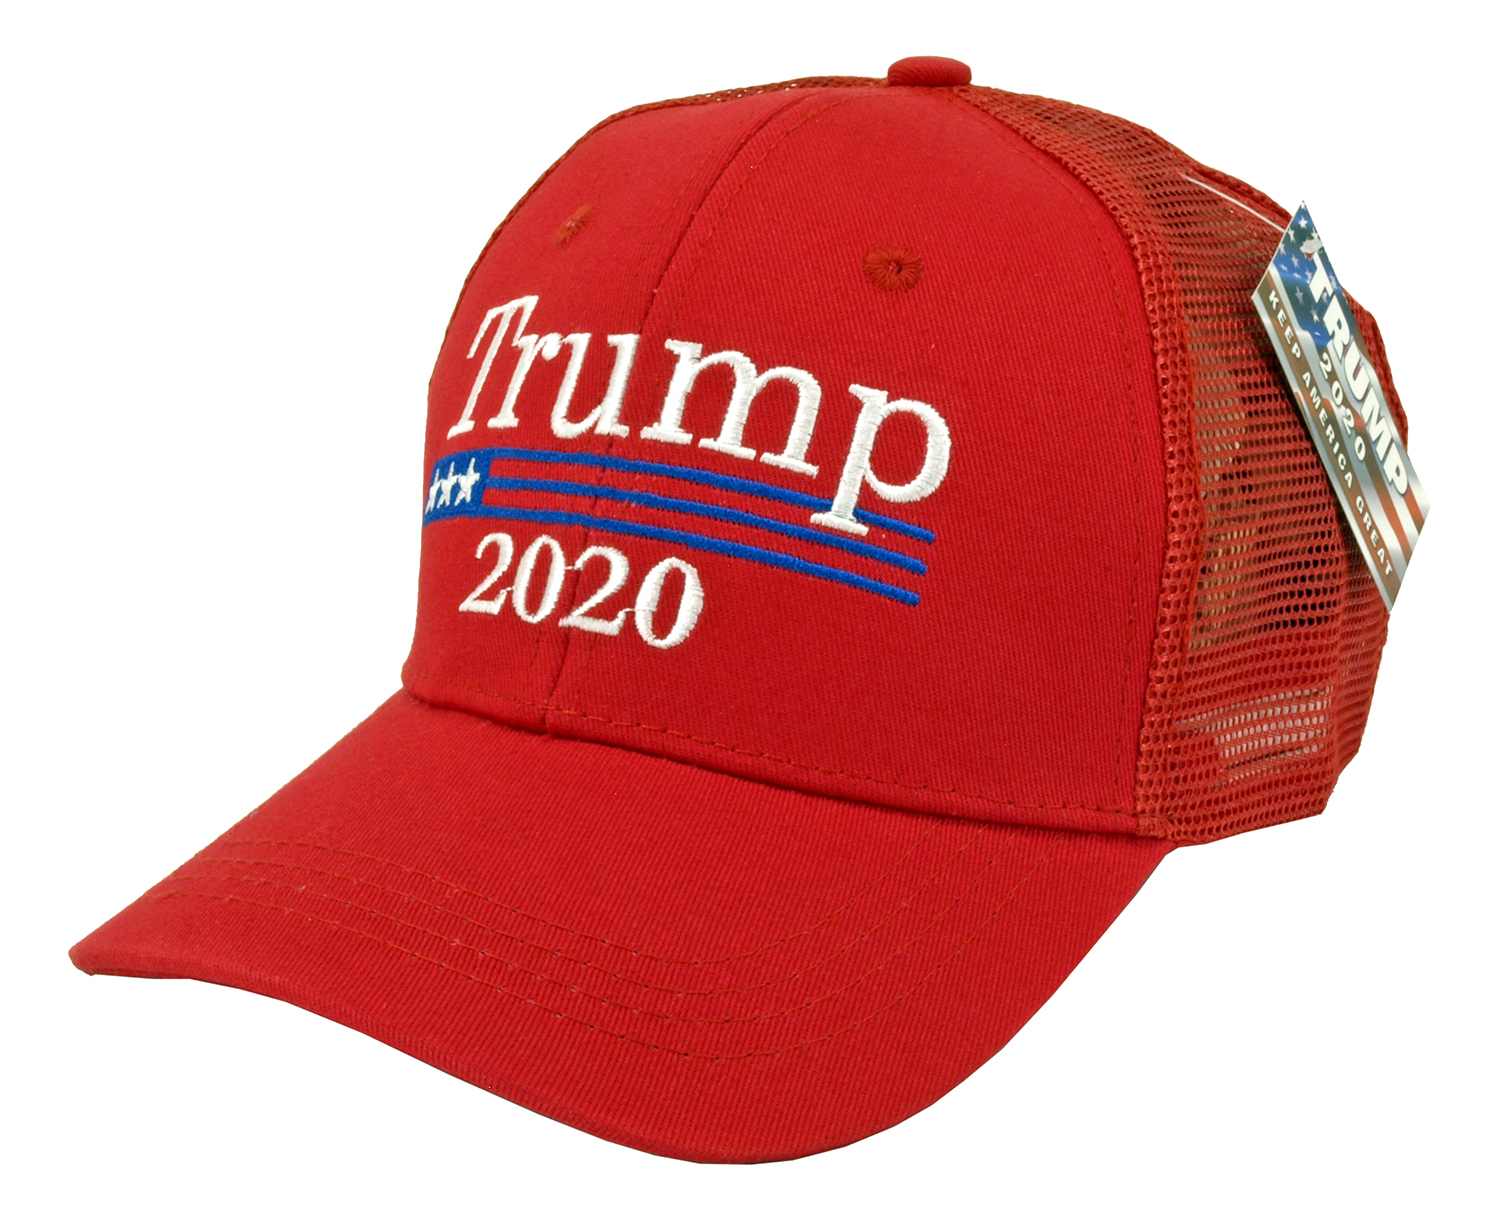 12 - pc. Trump 2020 Adjustable Trucker Hat - Assorted Colors